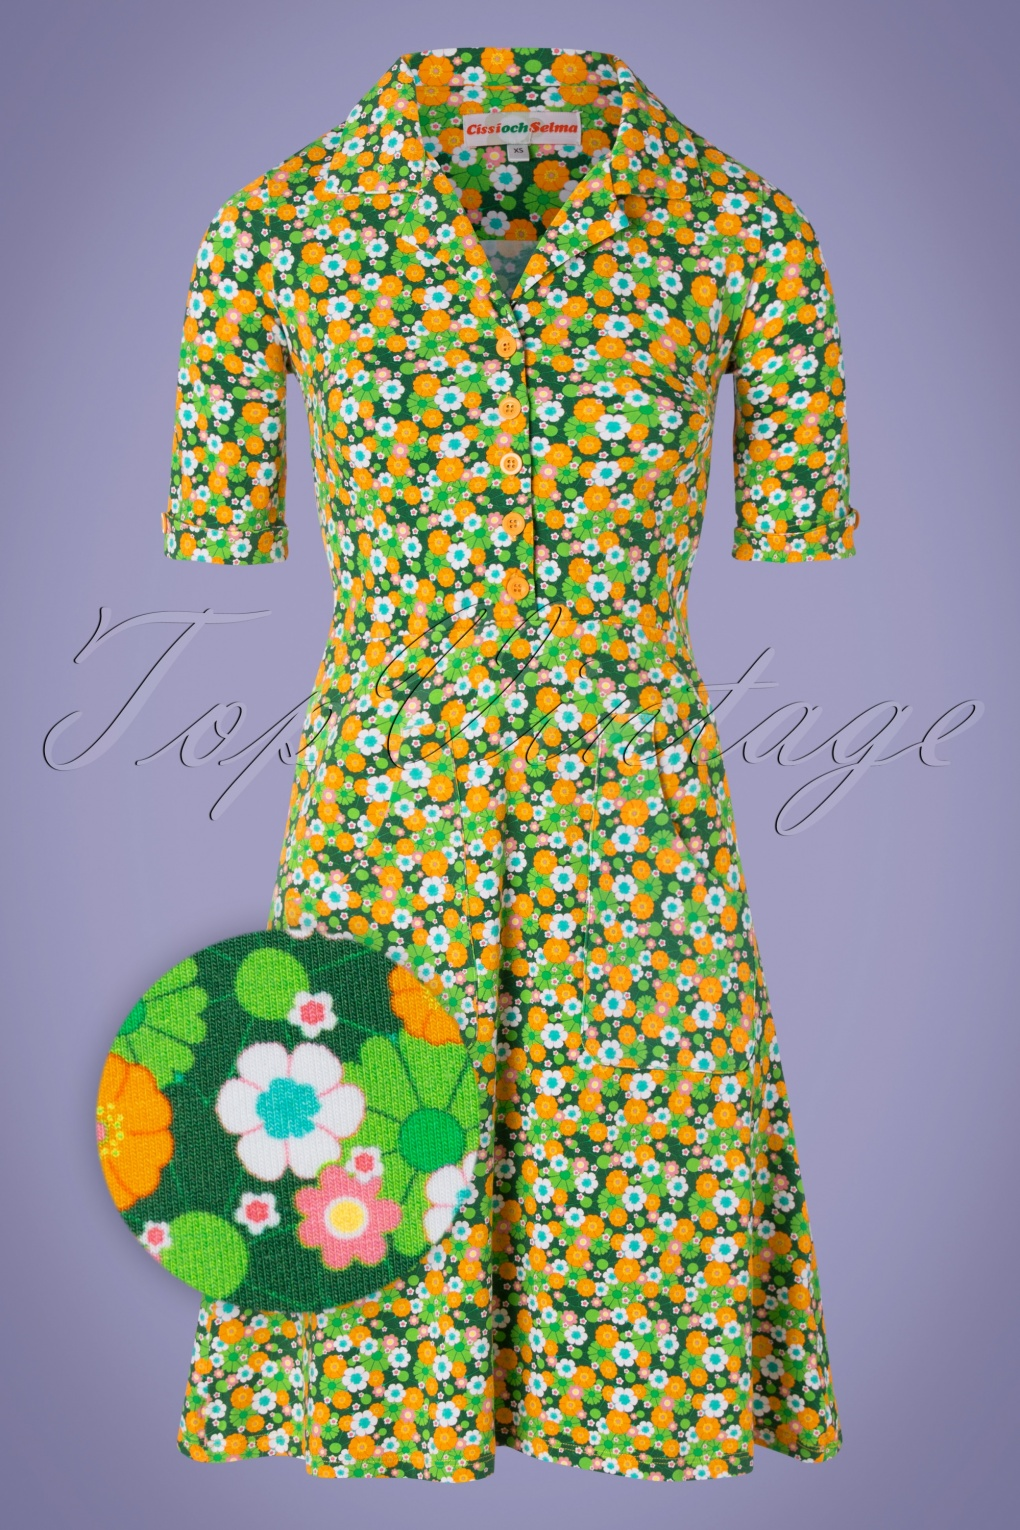 500 Vintage Style Dresses for Sale | Vintage Inspired Dresses 60s Monica Krasse Dress in Yellow and Green £101.29 AT vintagedancer.com